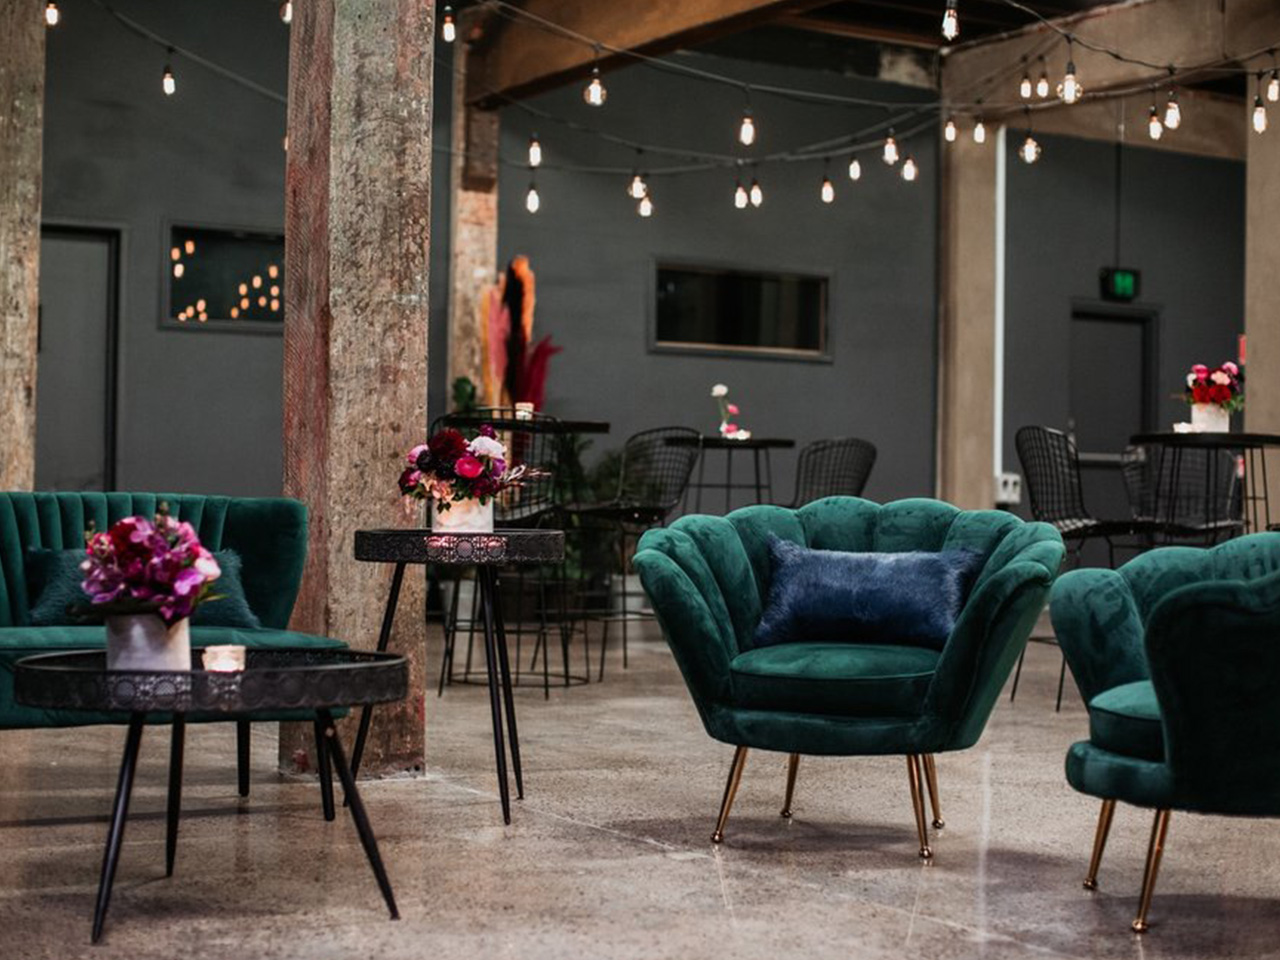 Inspiring event space with green chairs